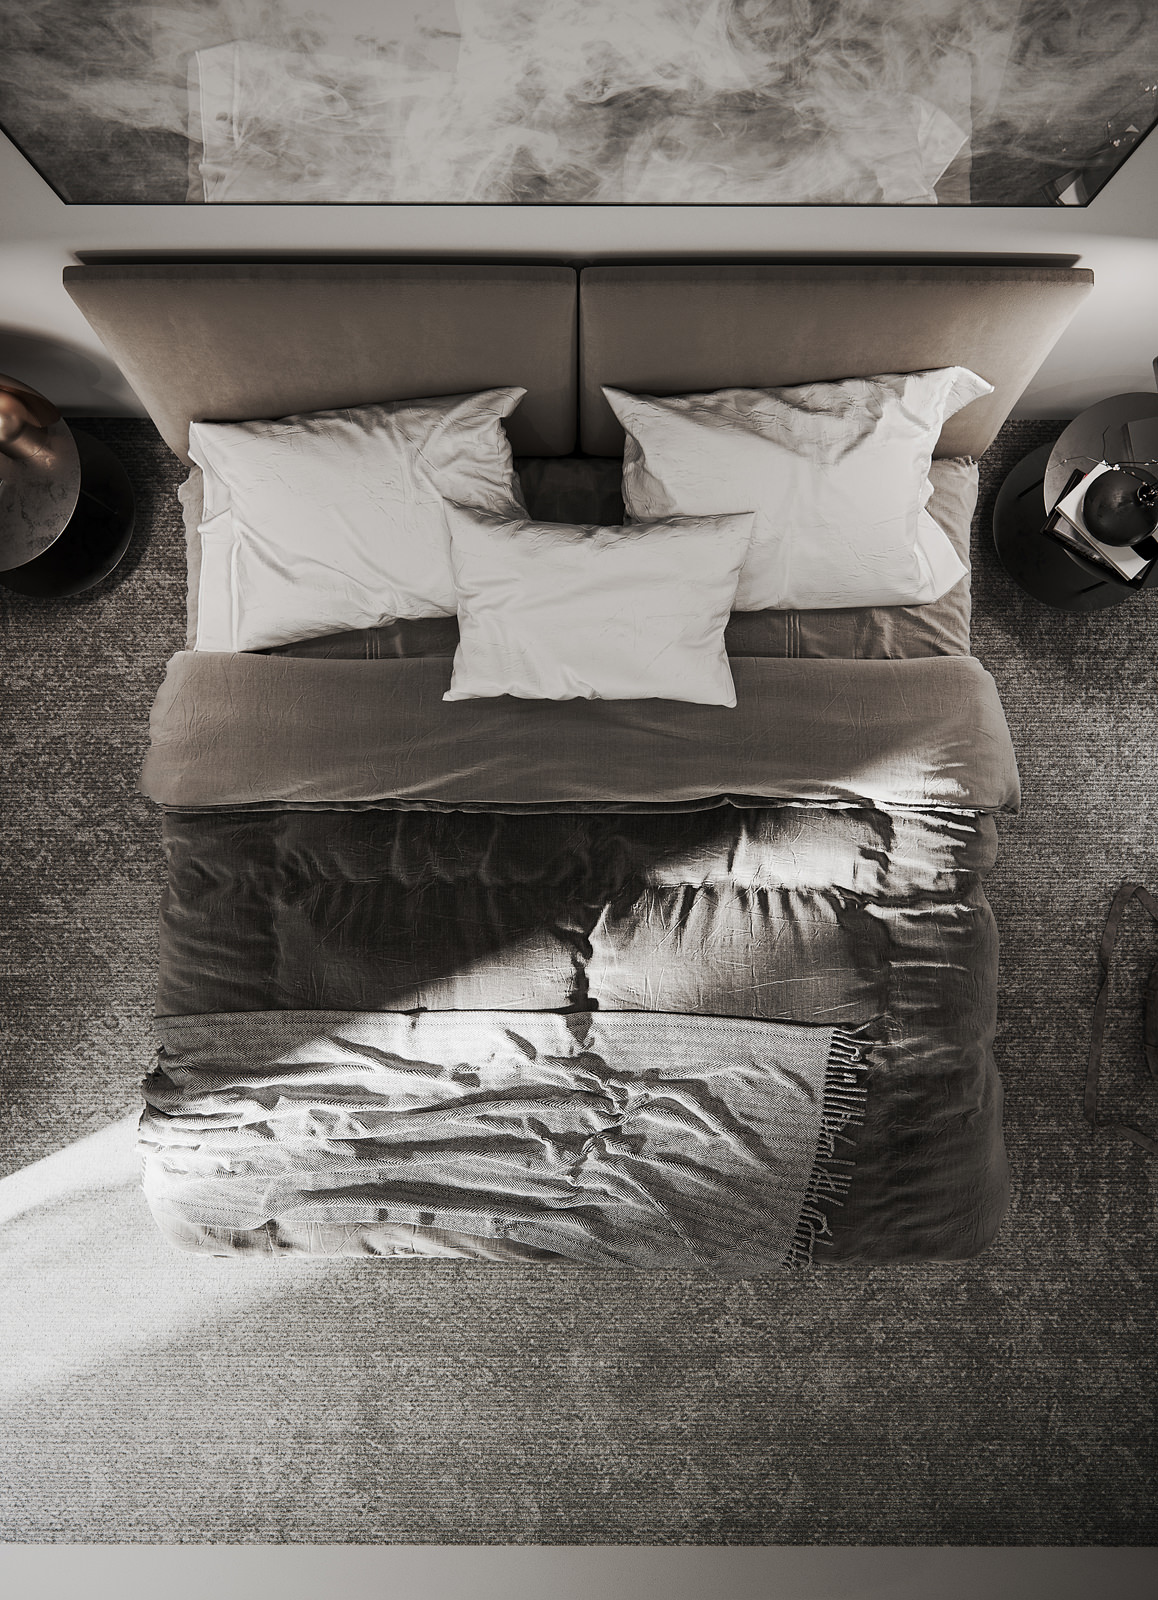 3D visualization of a bedroom captured from above depicting made-up bed with three white flax pillows, gray bedspread, smoke artwork in a black metal frame and two bedside tables